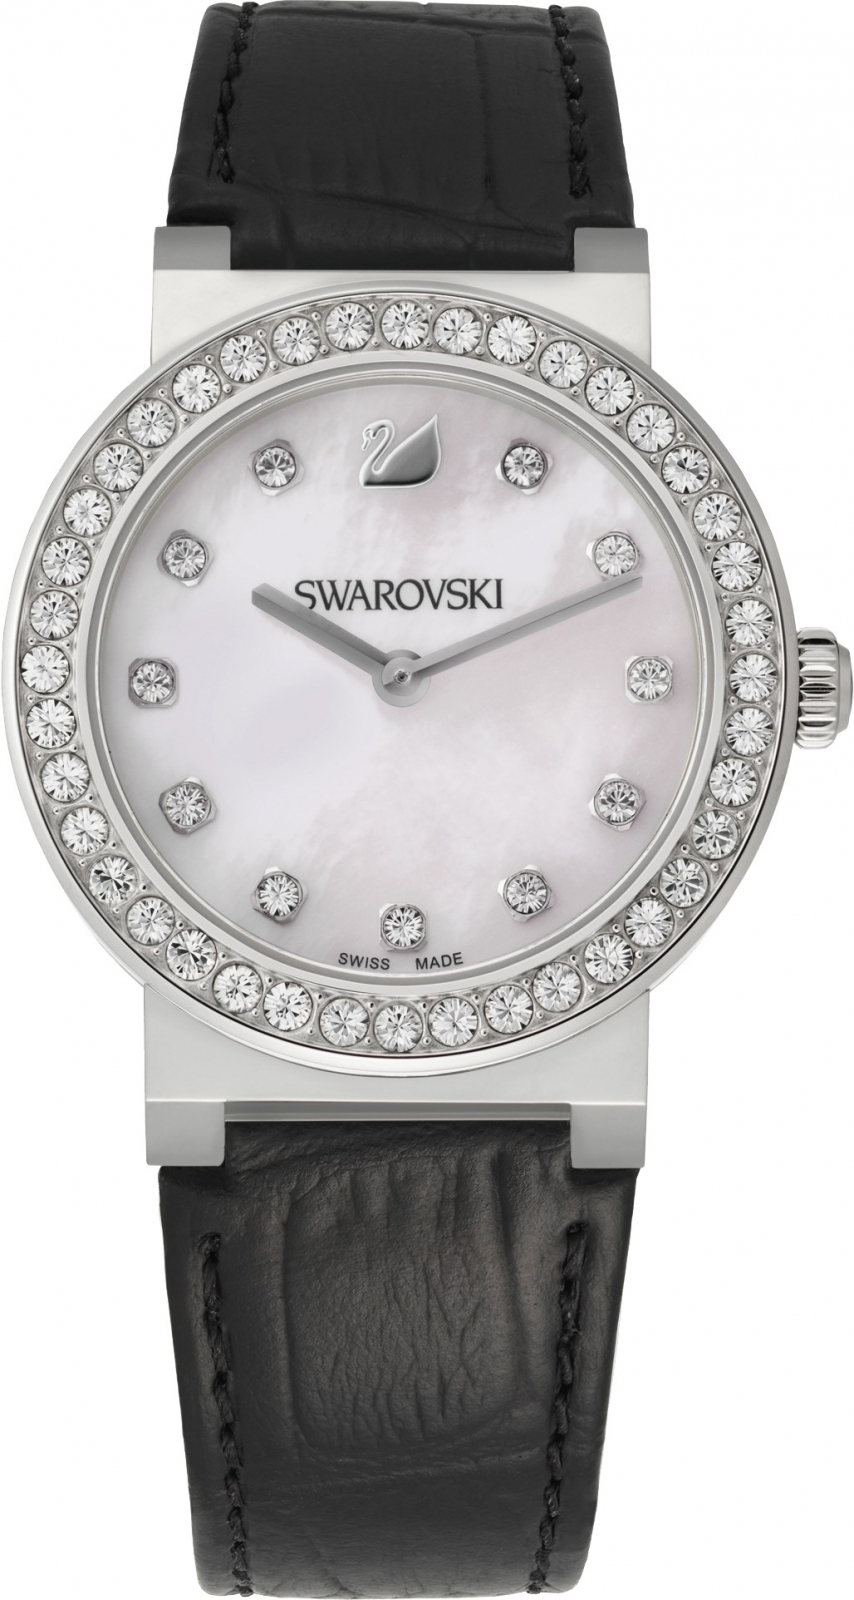 Купить Швейцарские часы Swarovski Citra Sphere Mini Black  5027221, Swarovski Citra Sphere Mini Black  5027221